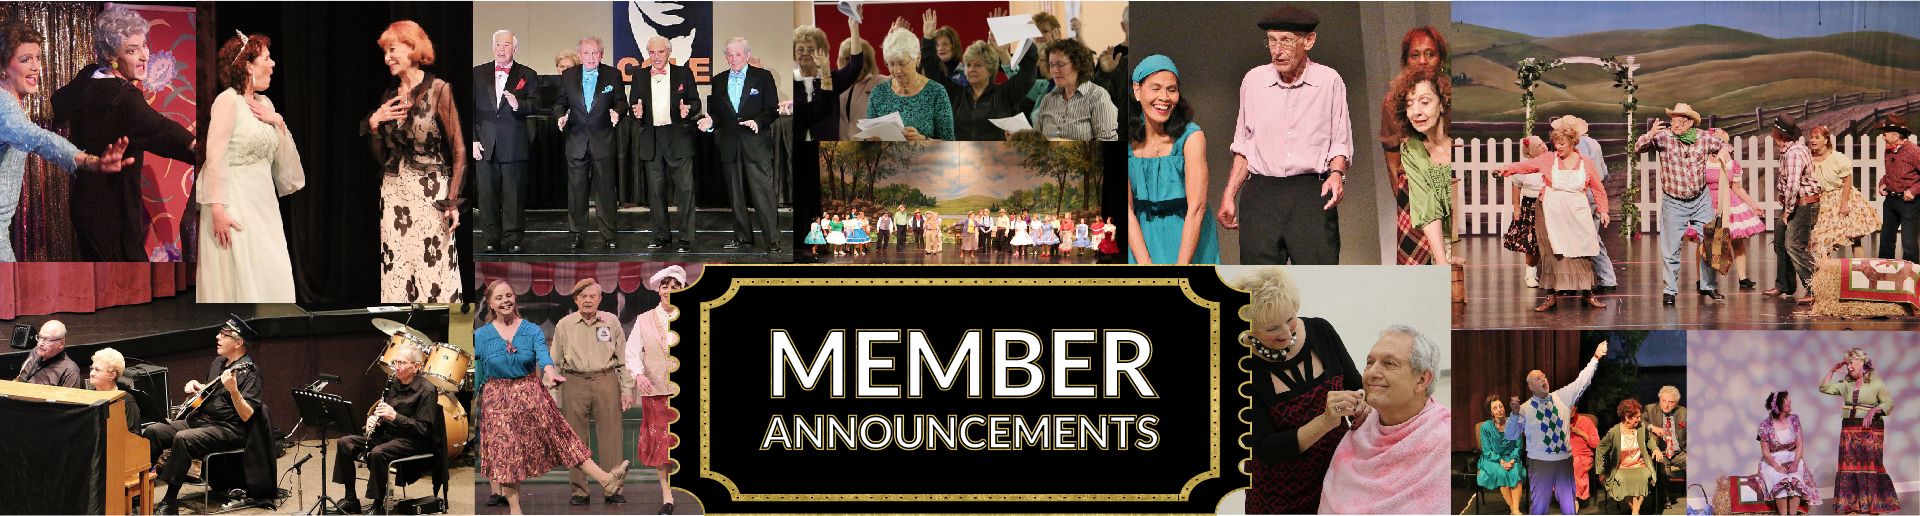 Member Announcements